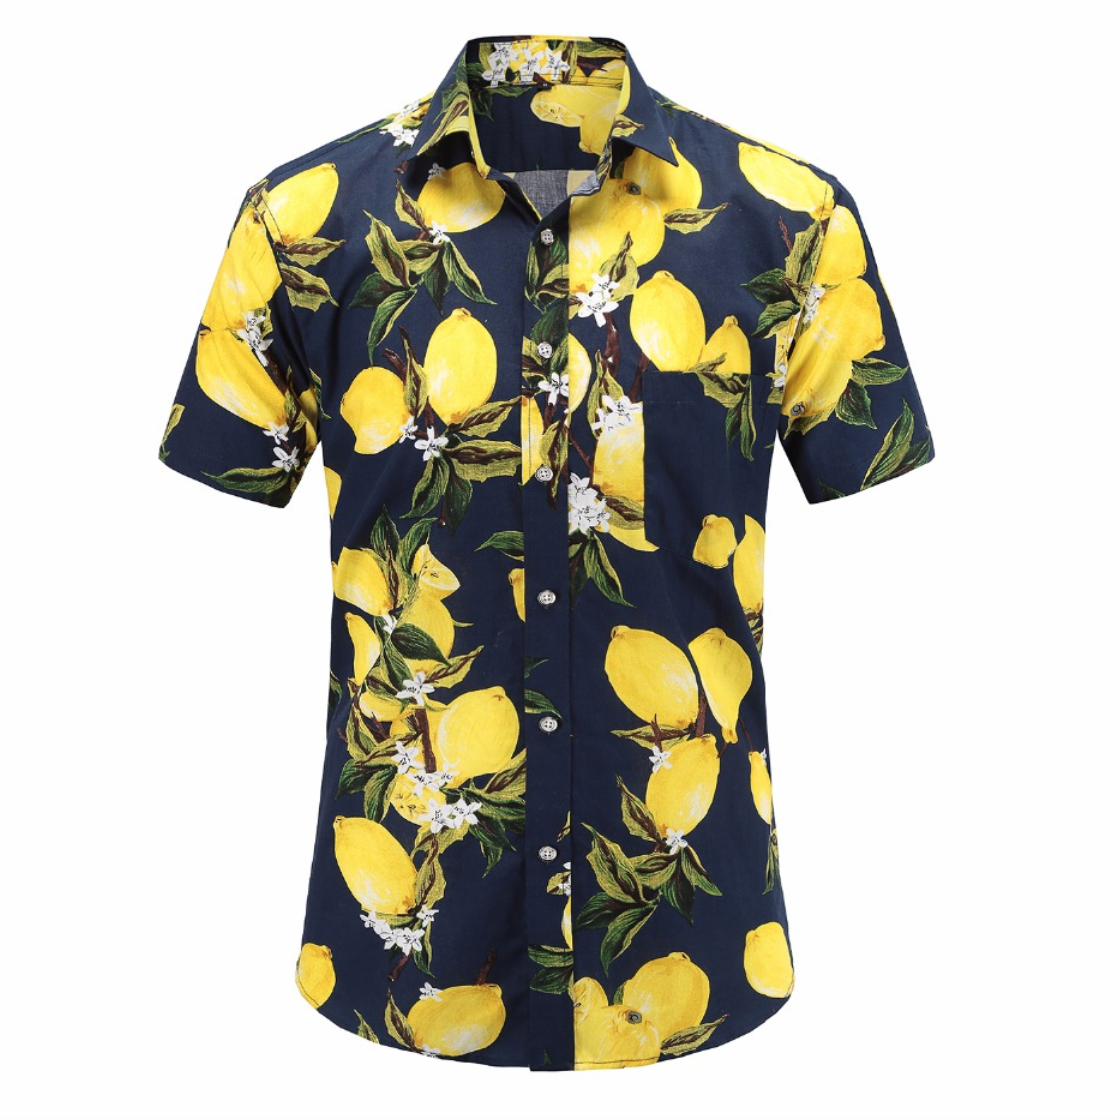 Aloha Summer Printed Short-Sleeved Shirt (3 Colors)